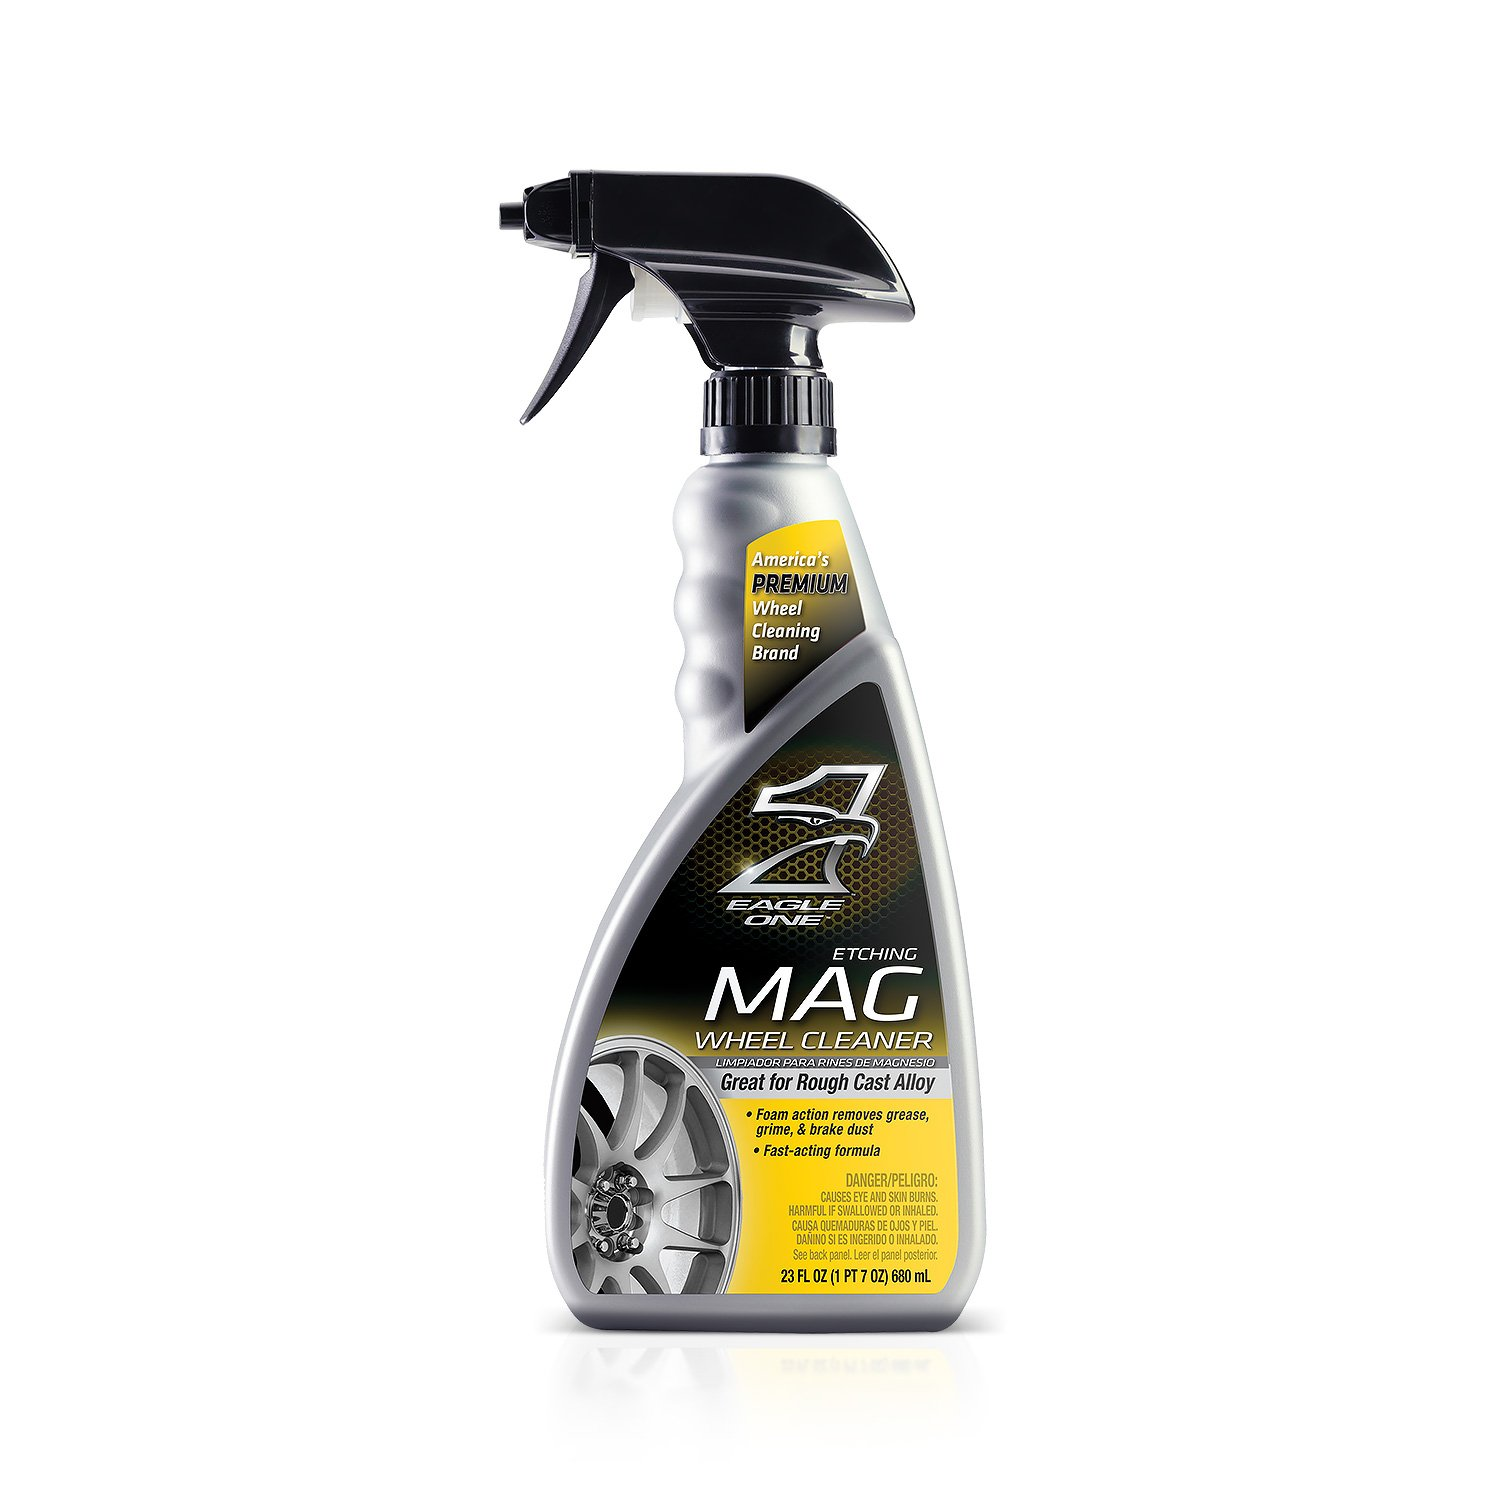 Etching Mag Wheel Cleaner - Eagle One